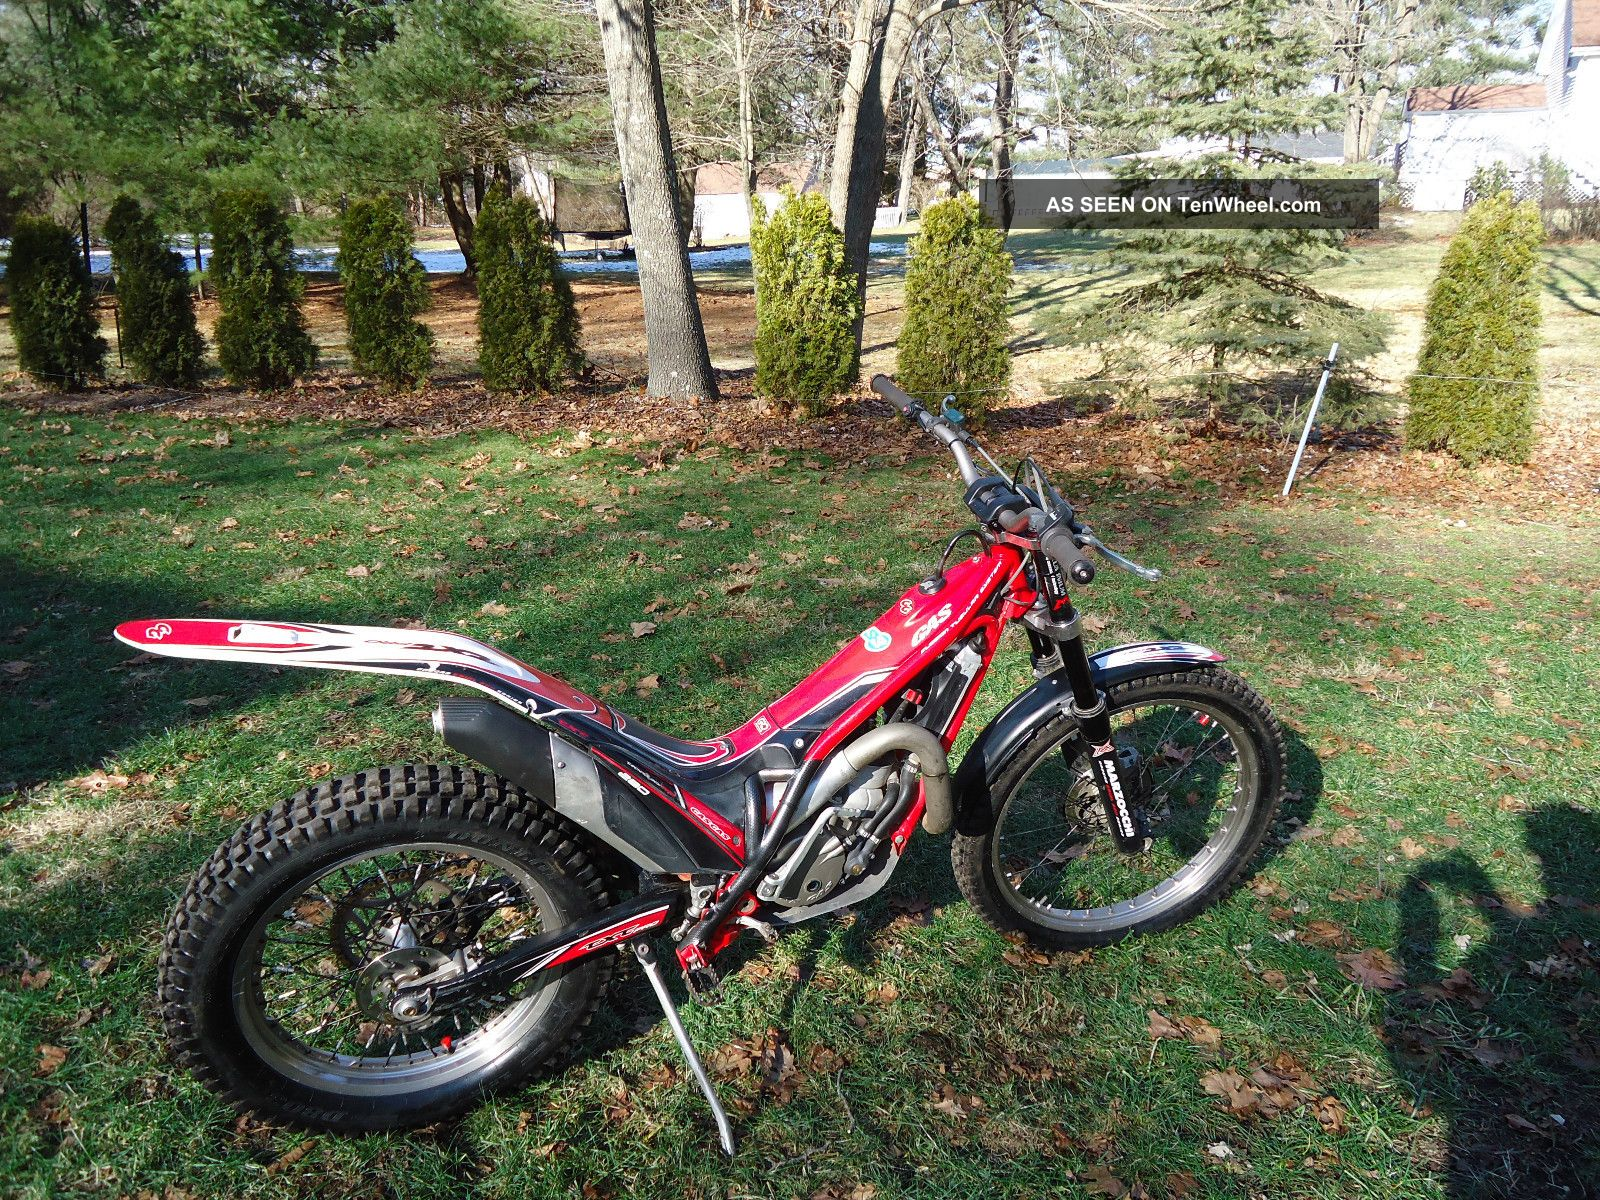 2011 Gas Gas 280 Pro Trials Bike Other Makes photo